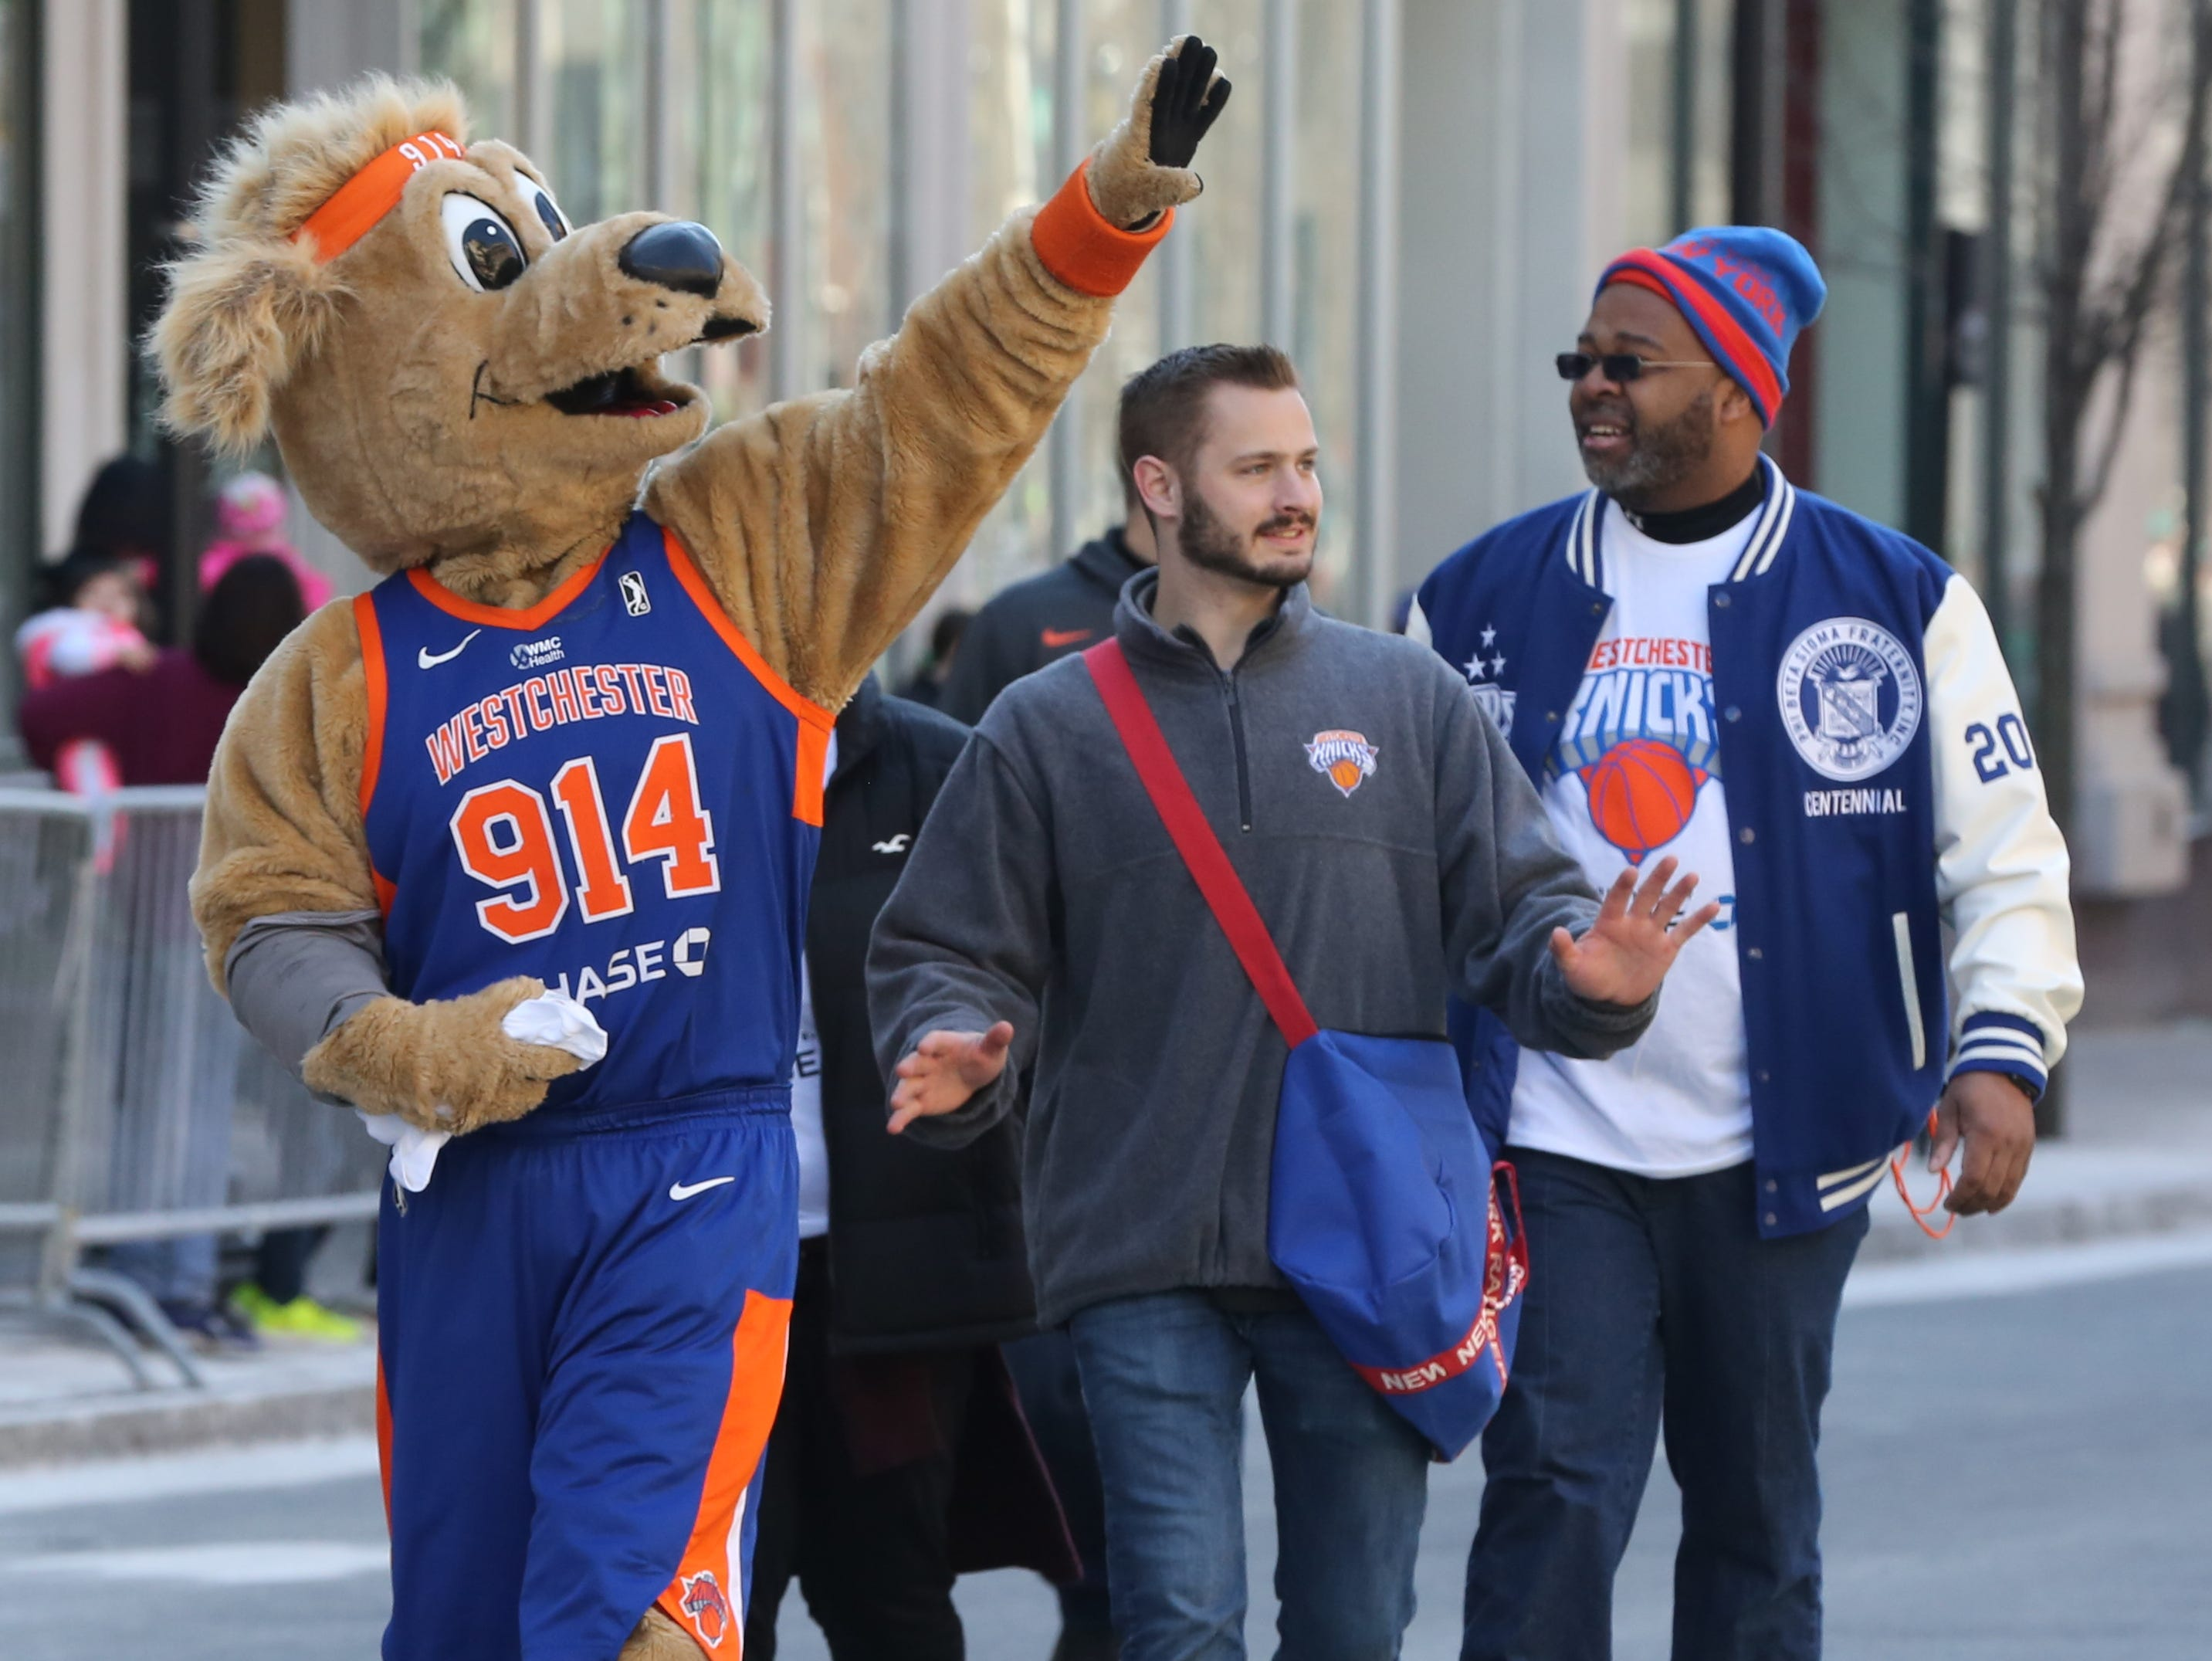 Westchester Knicks mascot waves to the crowd during the 22nd annual White Plains St. Patrick's Day parade along Mamaroneck Avenue in White Plains March 9, 2019.